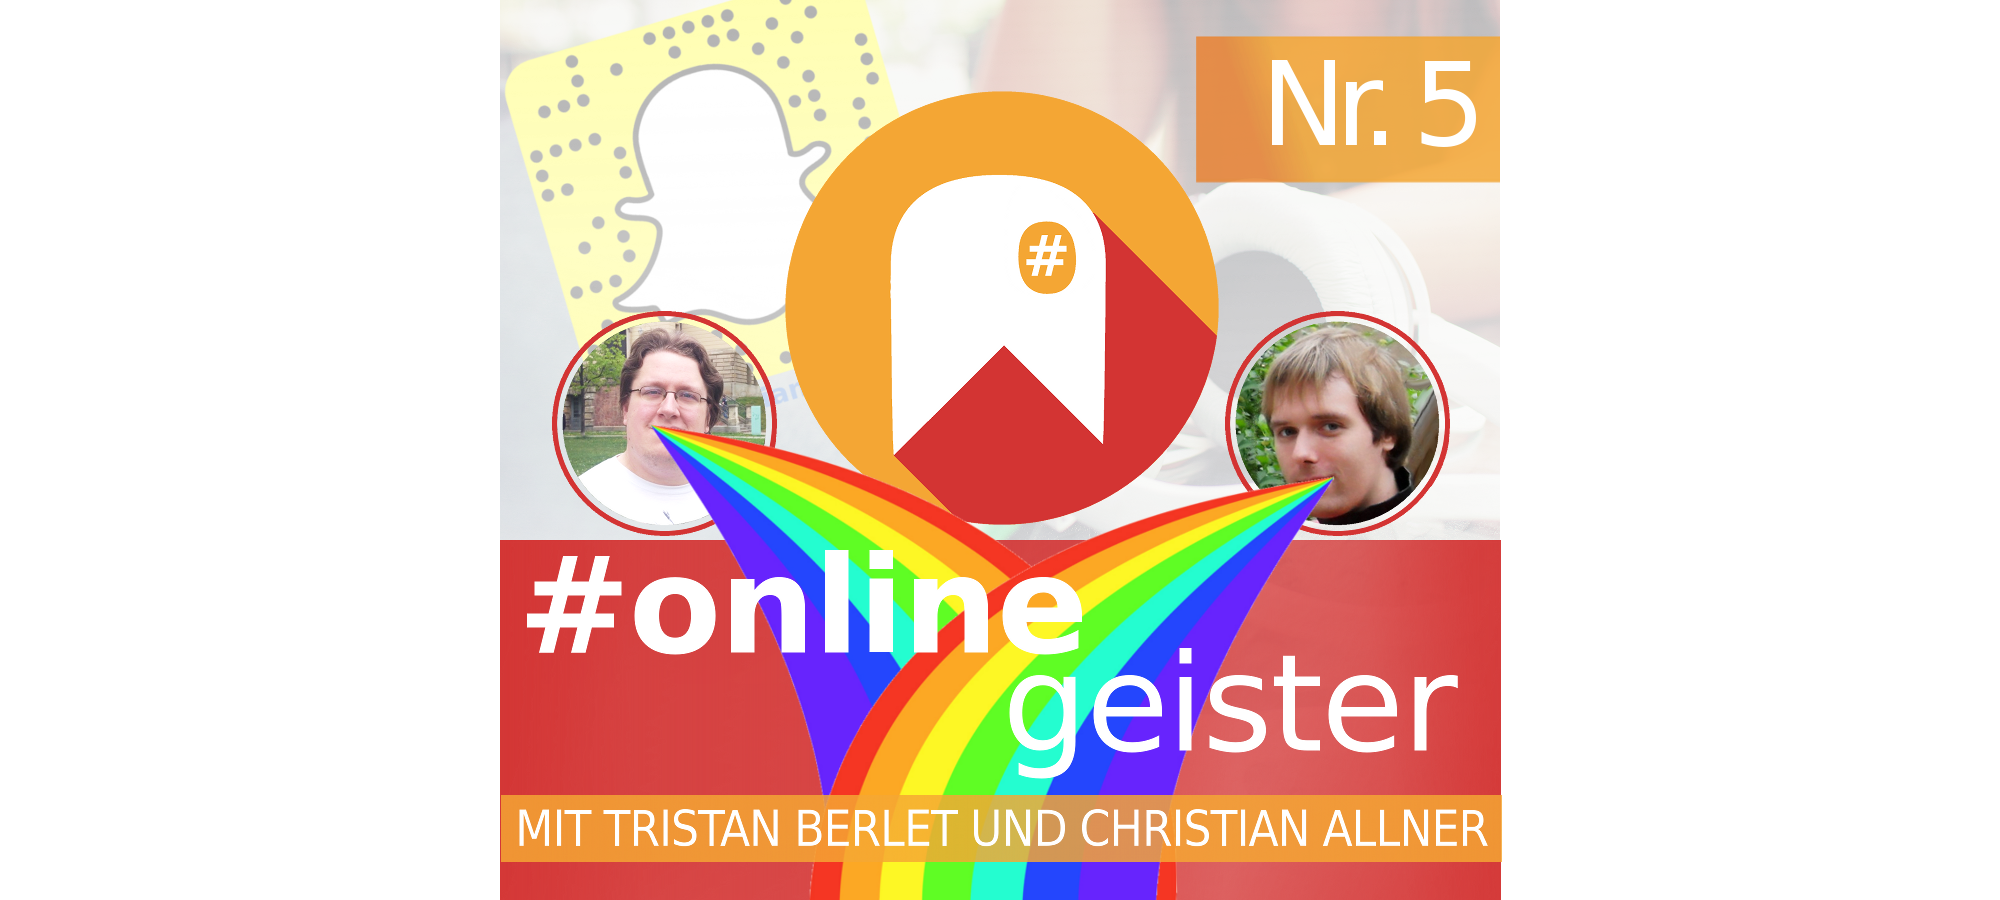 Podcasthinweis: Snapchat — #Onlinegeister-Podcast Nr. 5